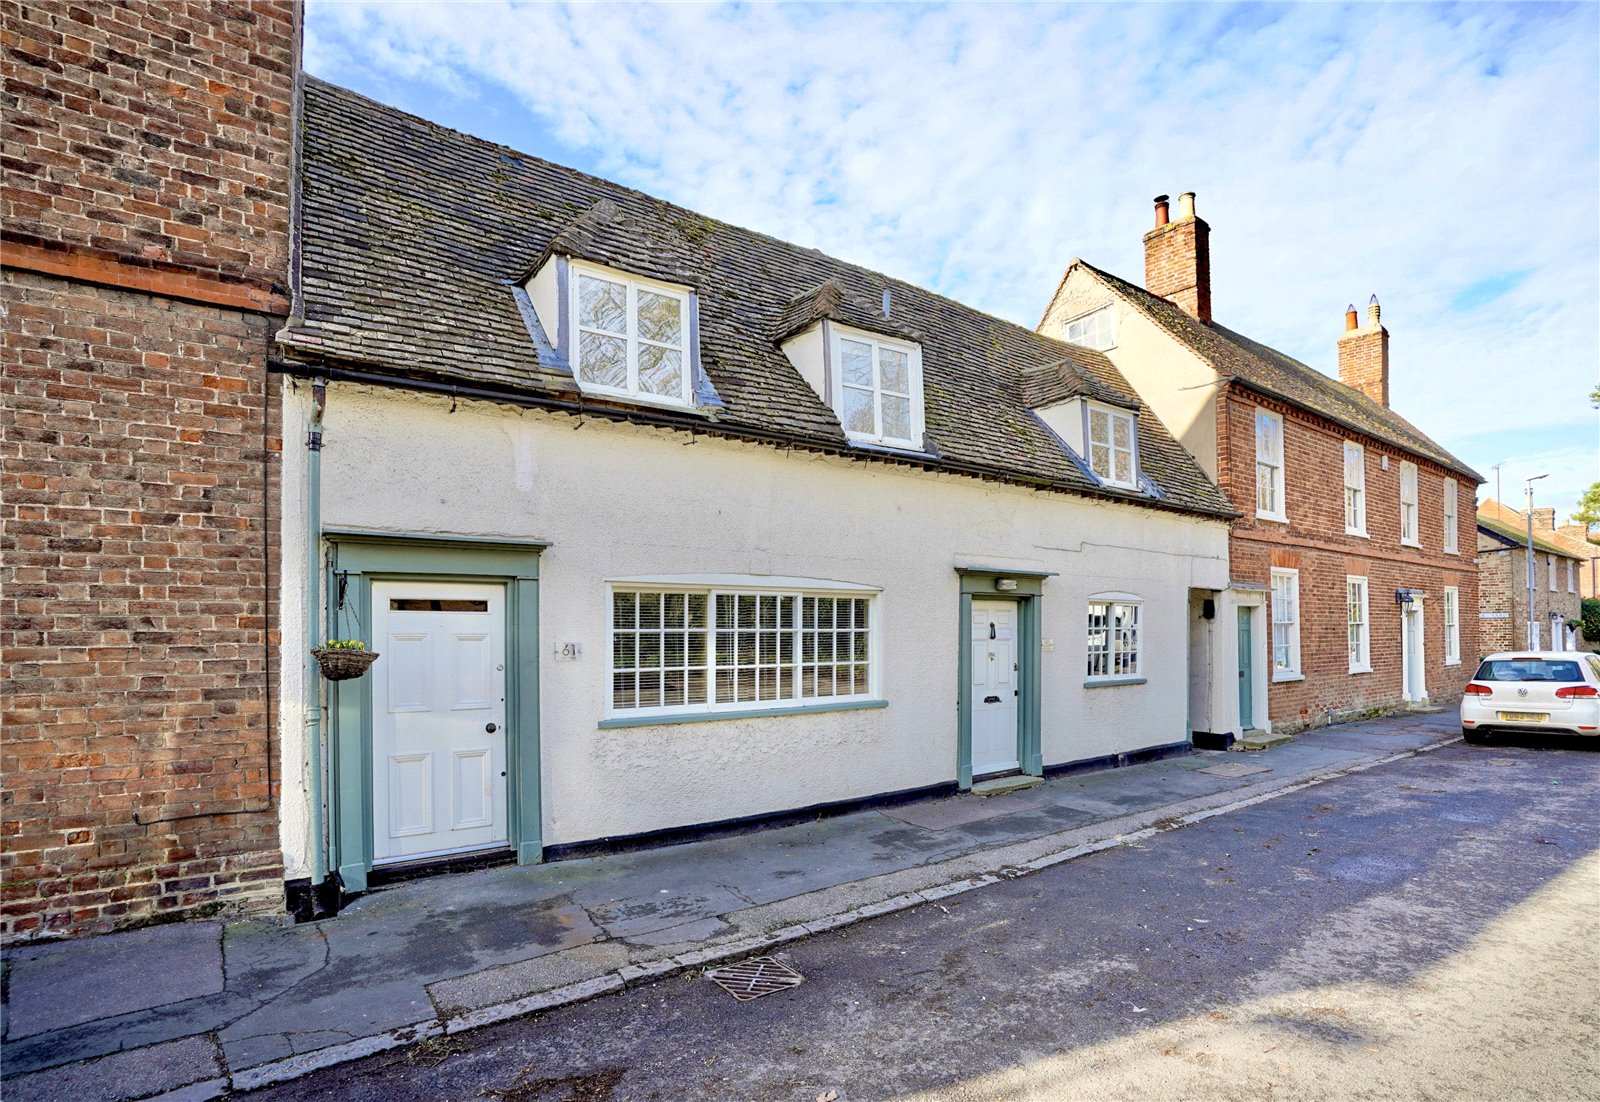 3 bed house for sale in Buckden, High Street, PE19 5TA, PE19